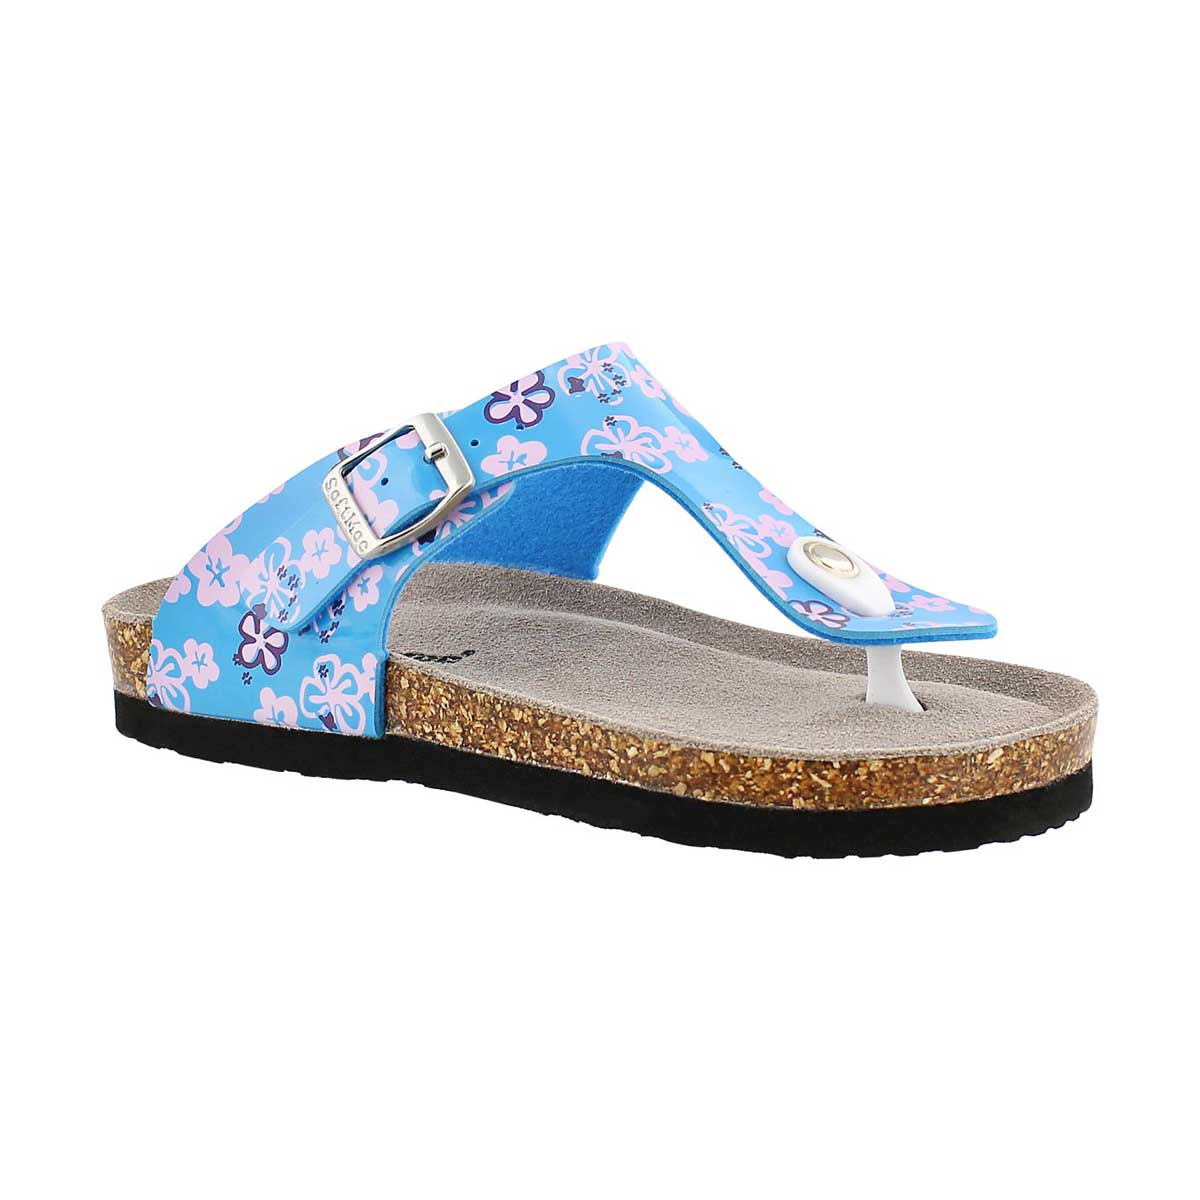 Girls' ALISON 2 blue print thong sandals